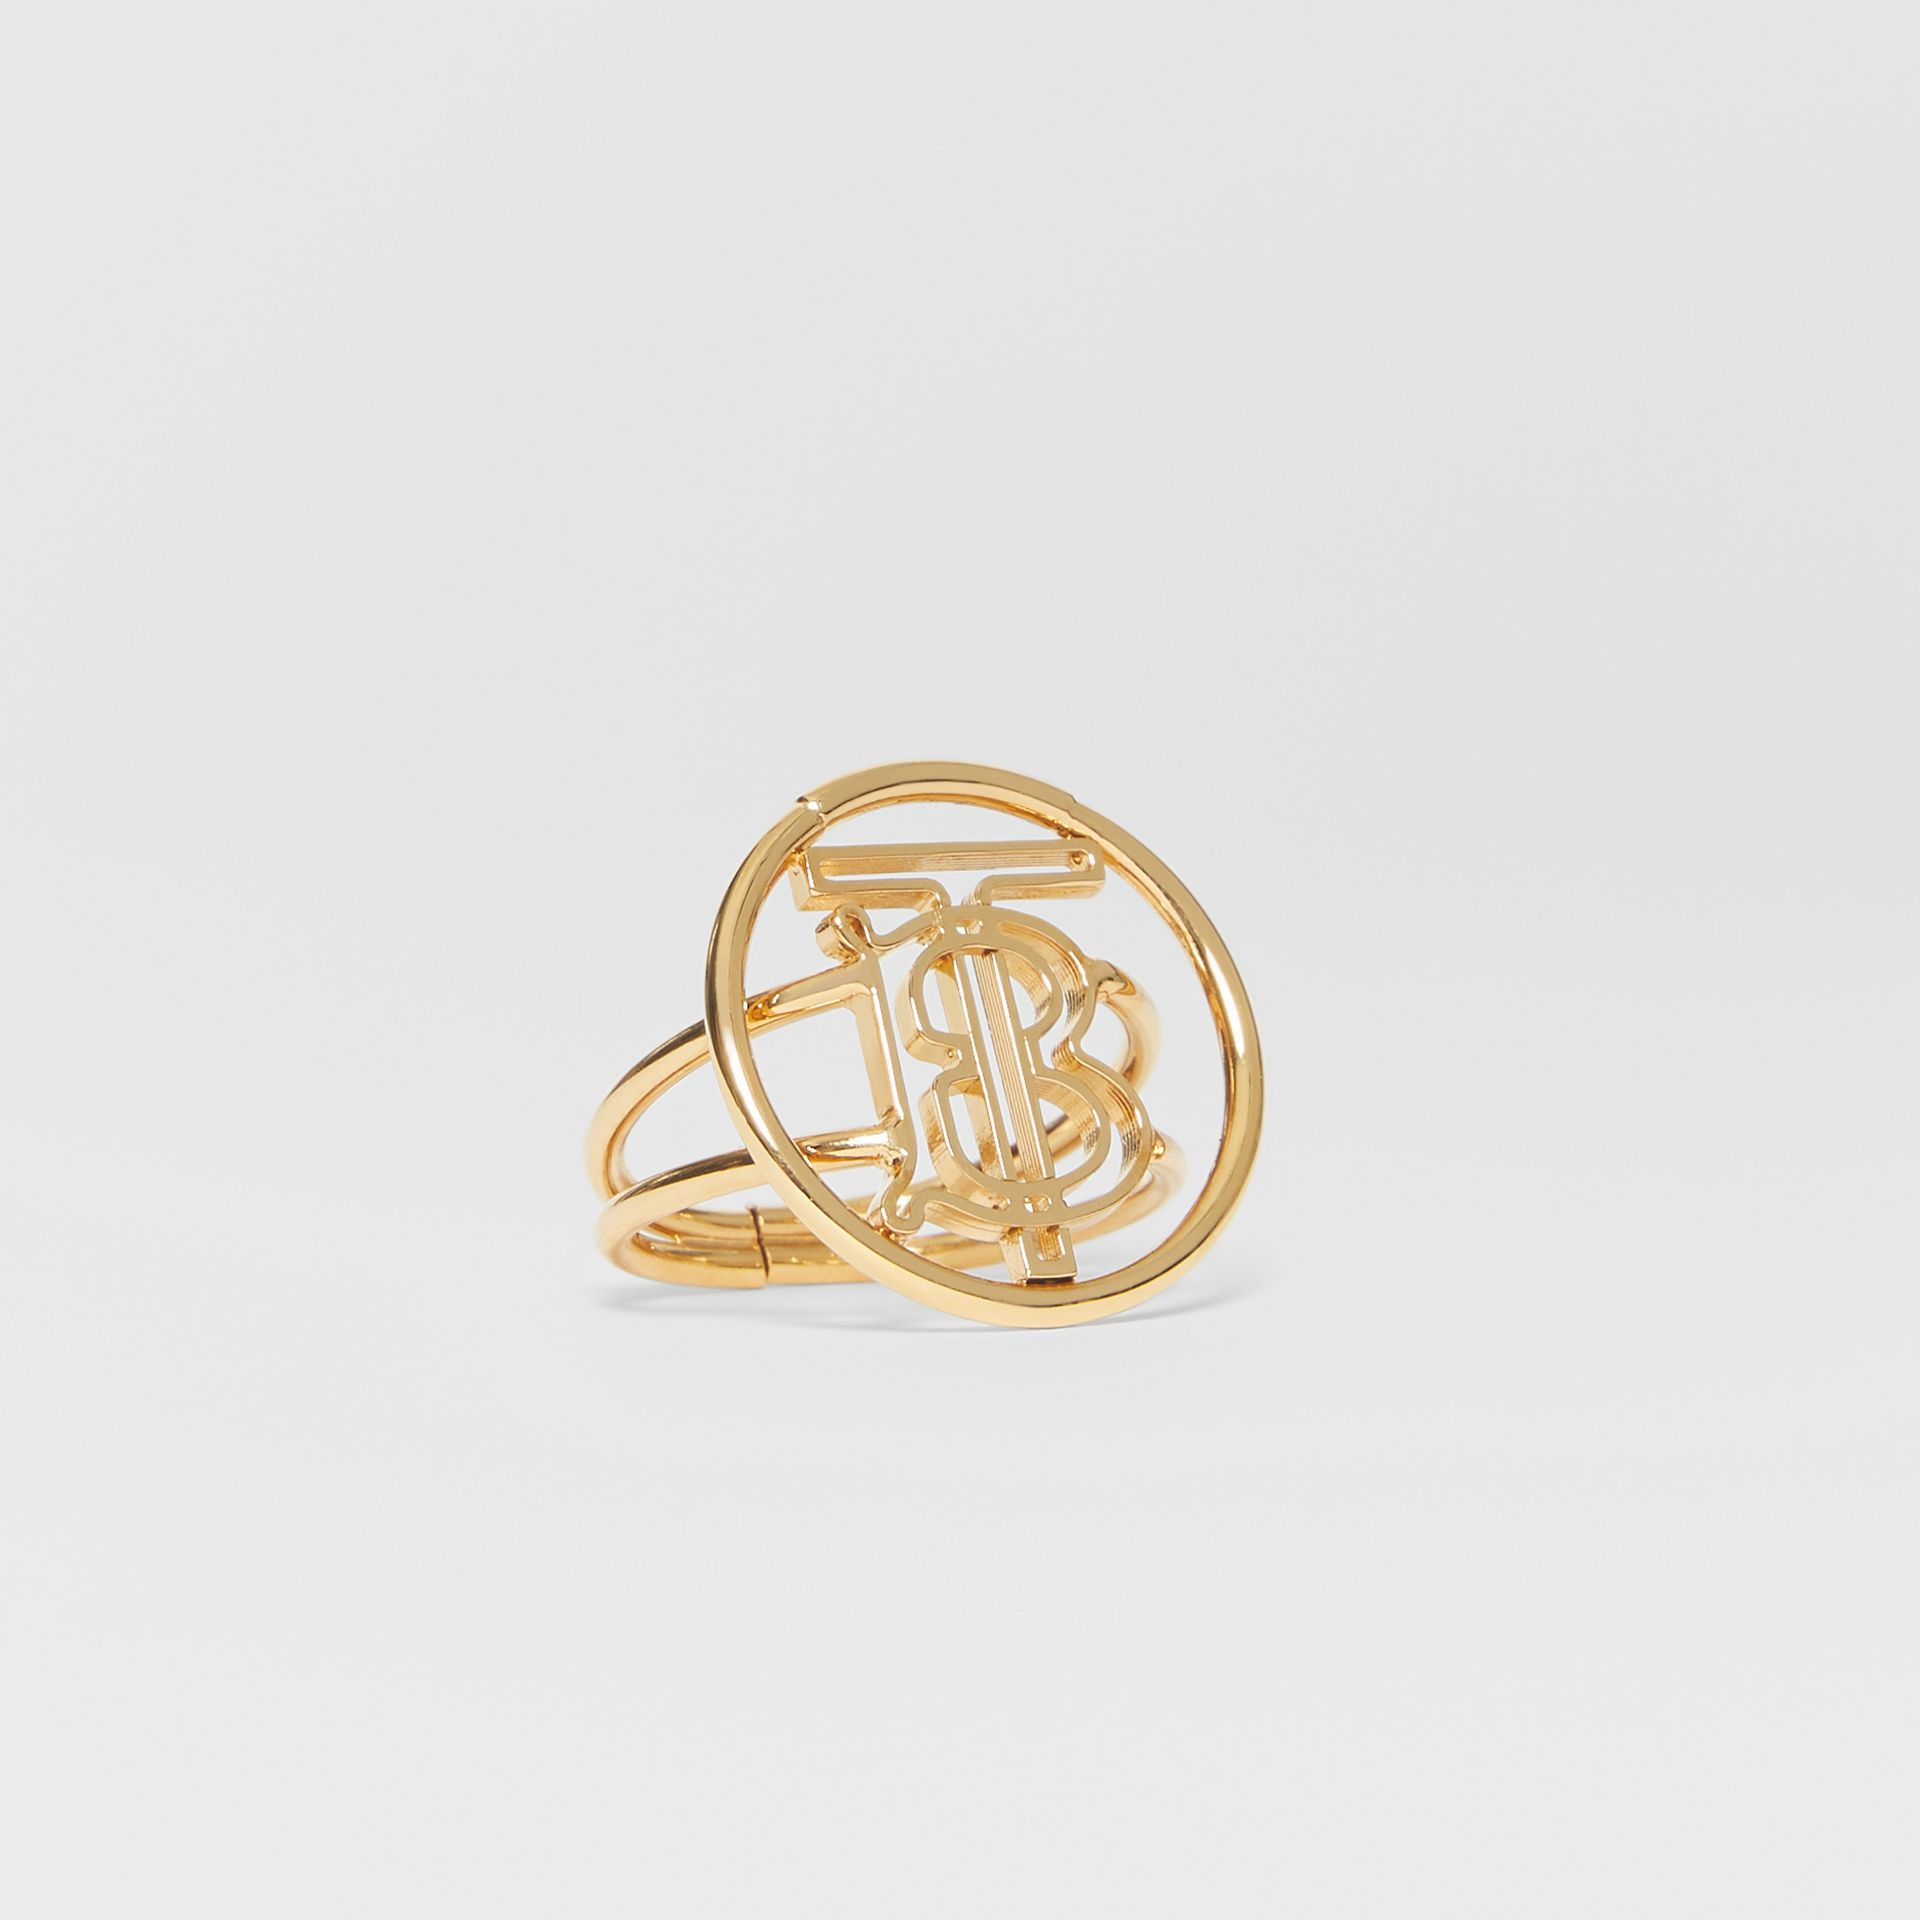 Large Gold-plated Monogram Motif Ring in Light - Women | Burberry United Kingdom - gallery image 2